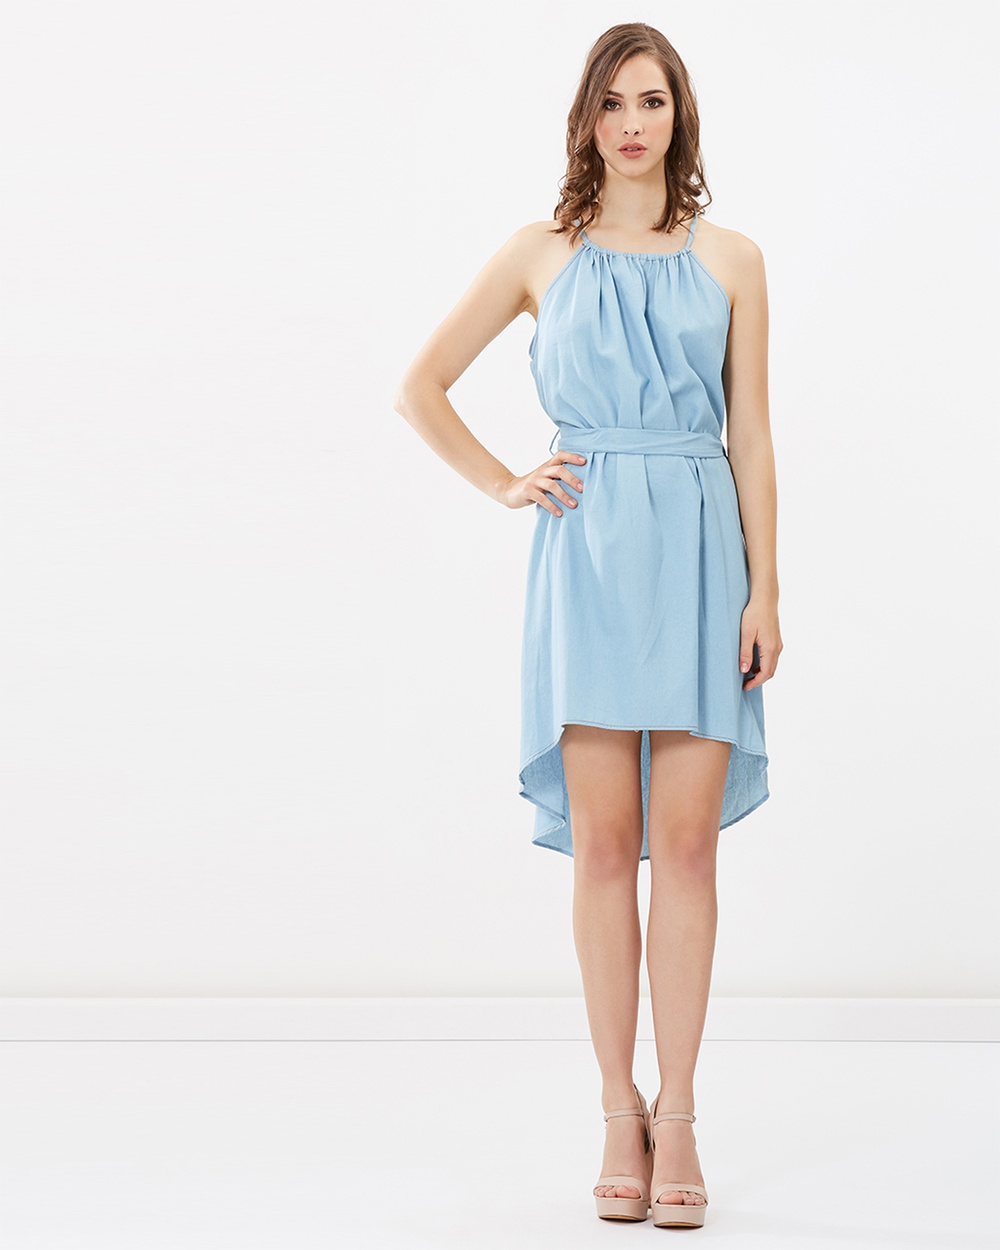 Honey and Beau Lara Tie Dress Dresses Light Blue Lara Tie Dress